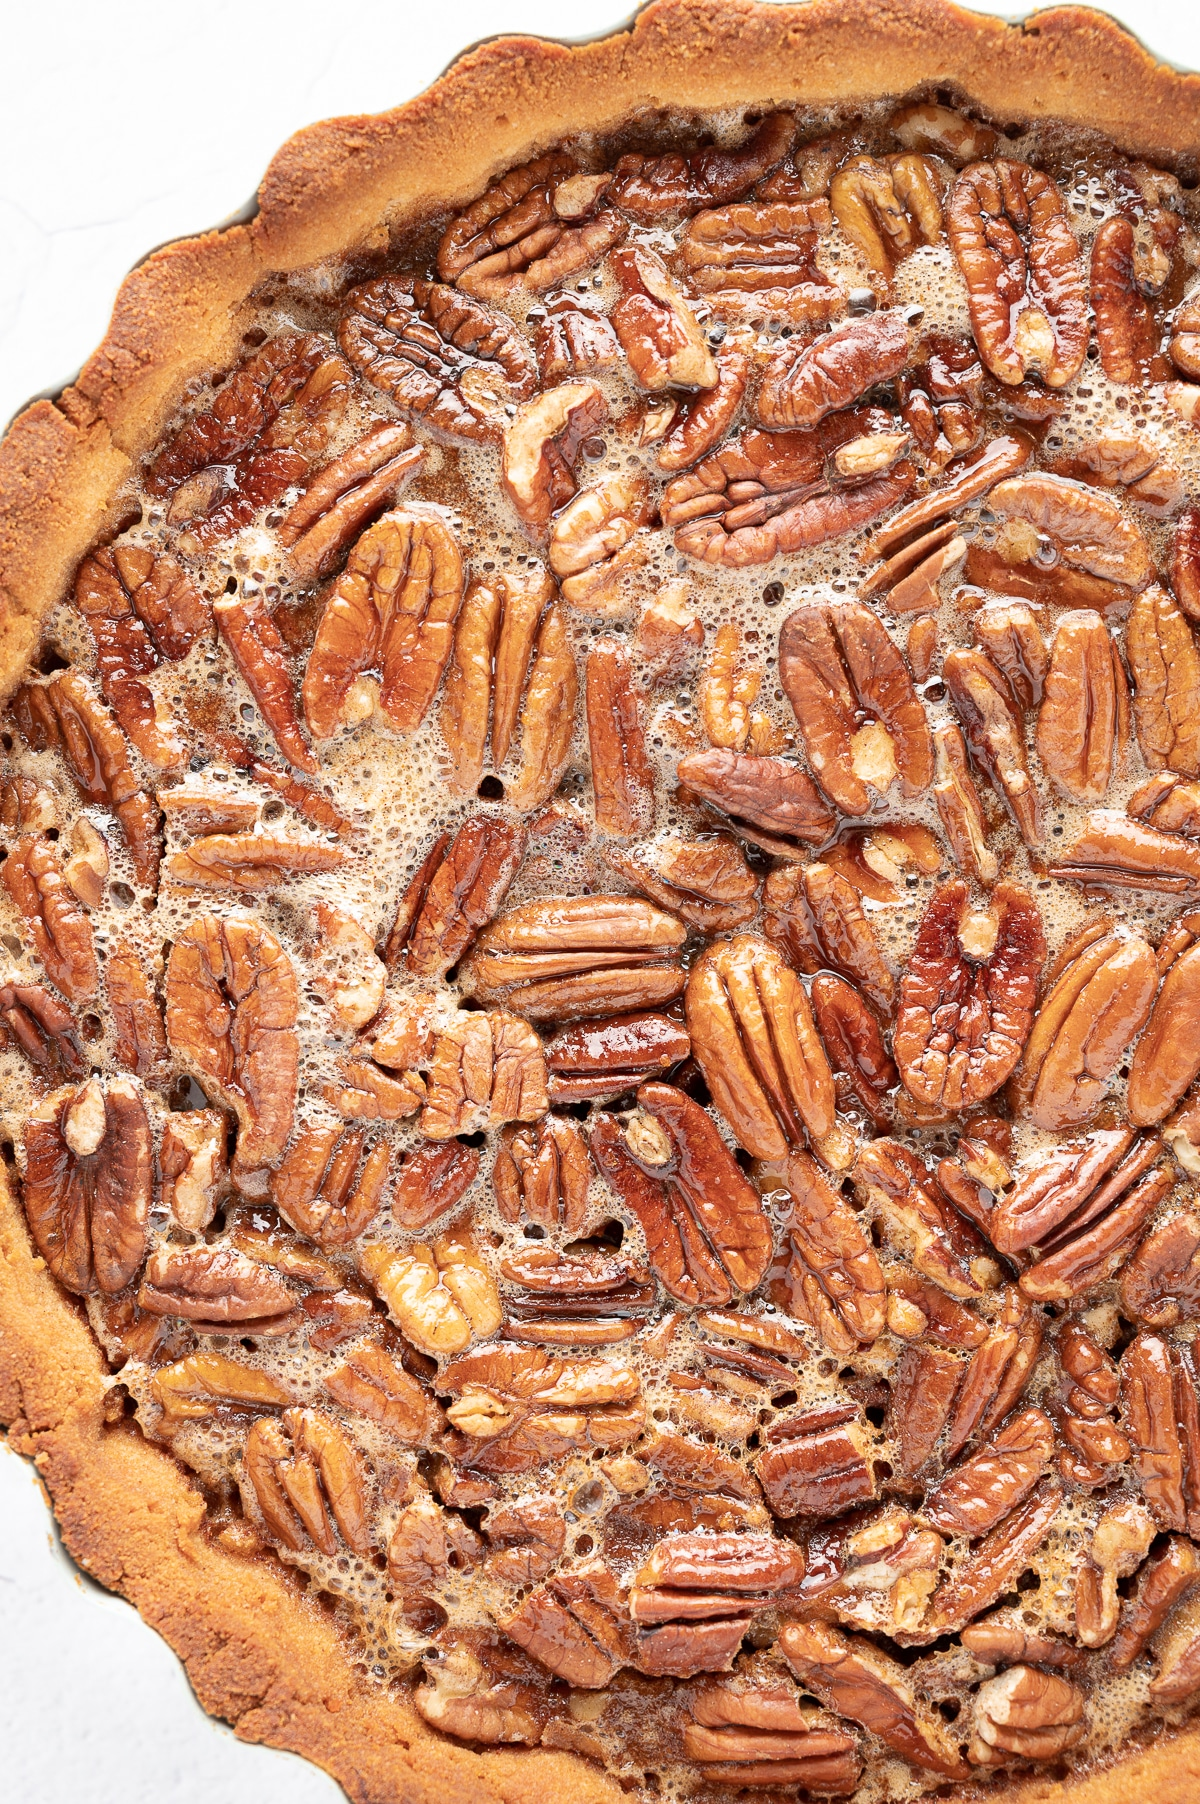 a close up image of the top of a pecan pie showing the sticky gooey texture of the filling and golden baked pecans in a perfectly baked crust.